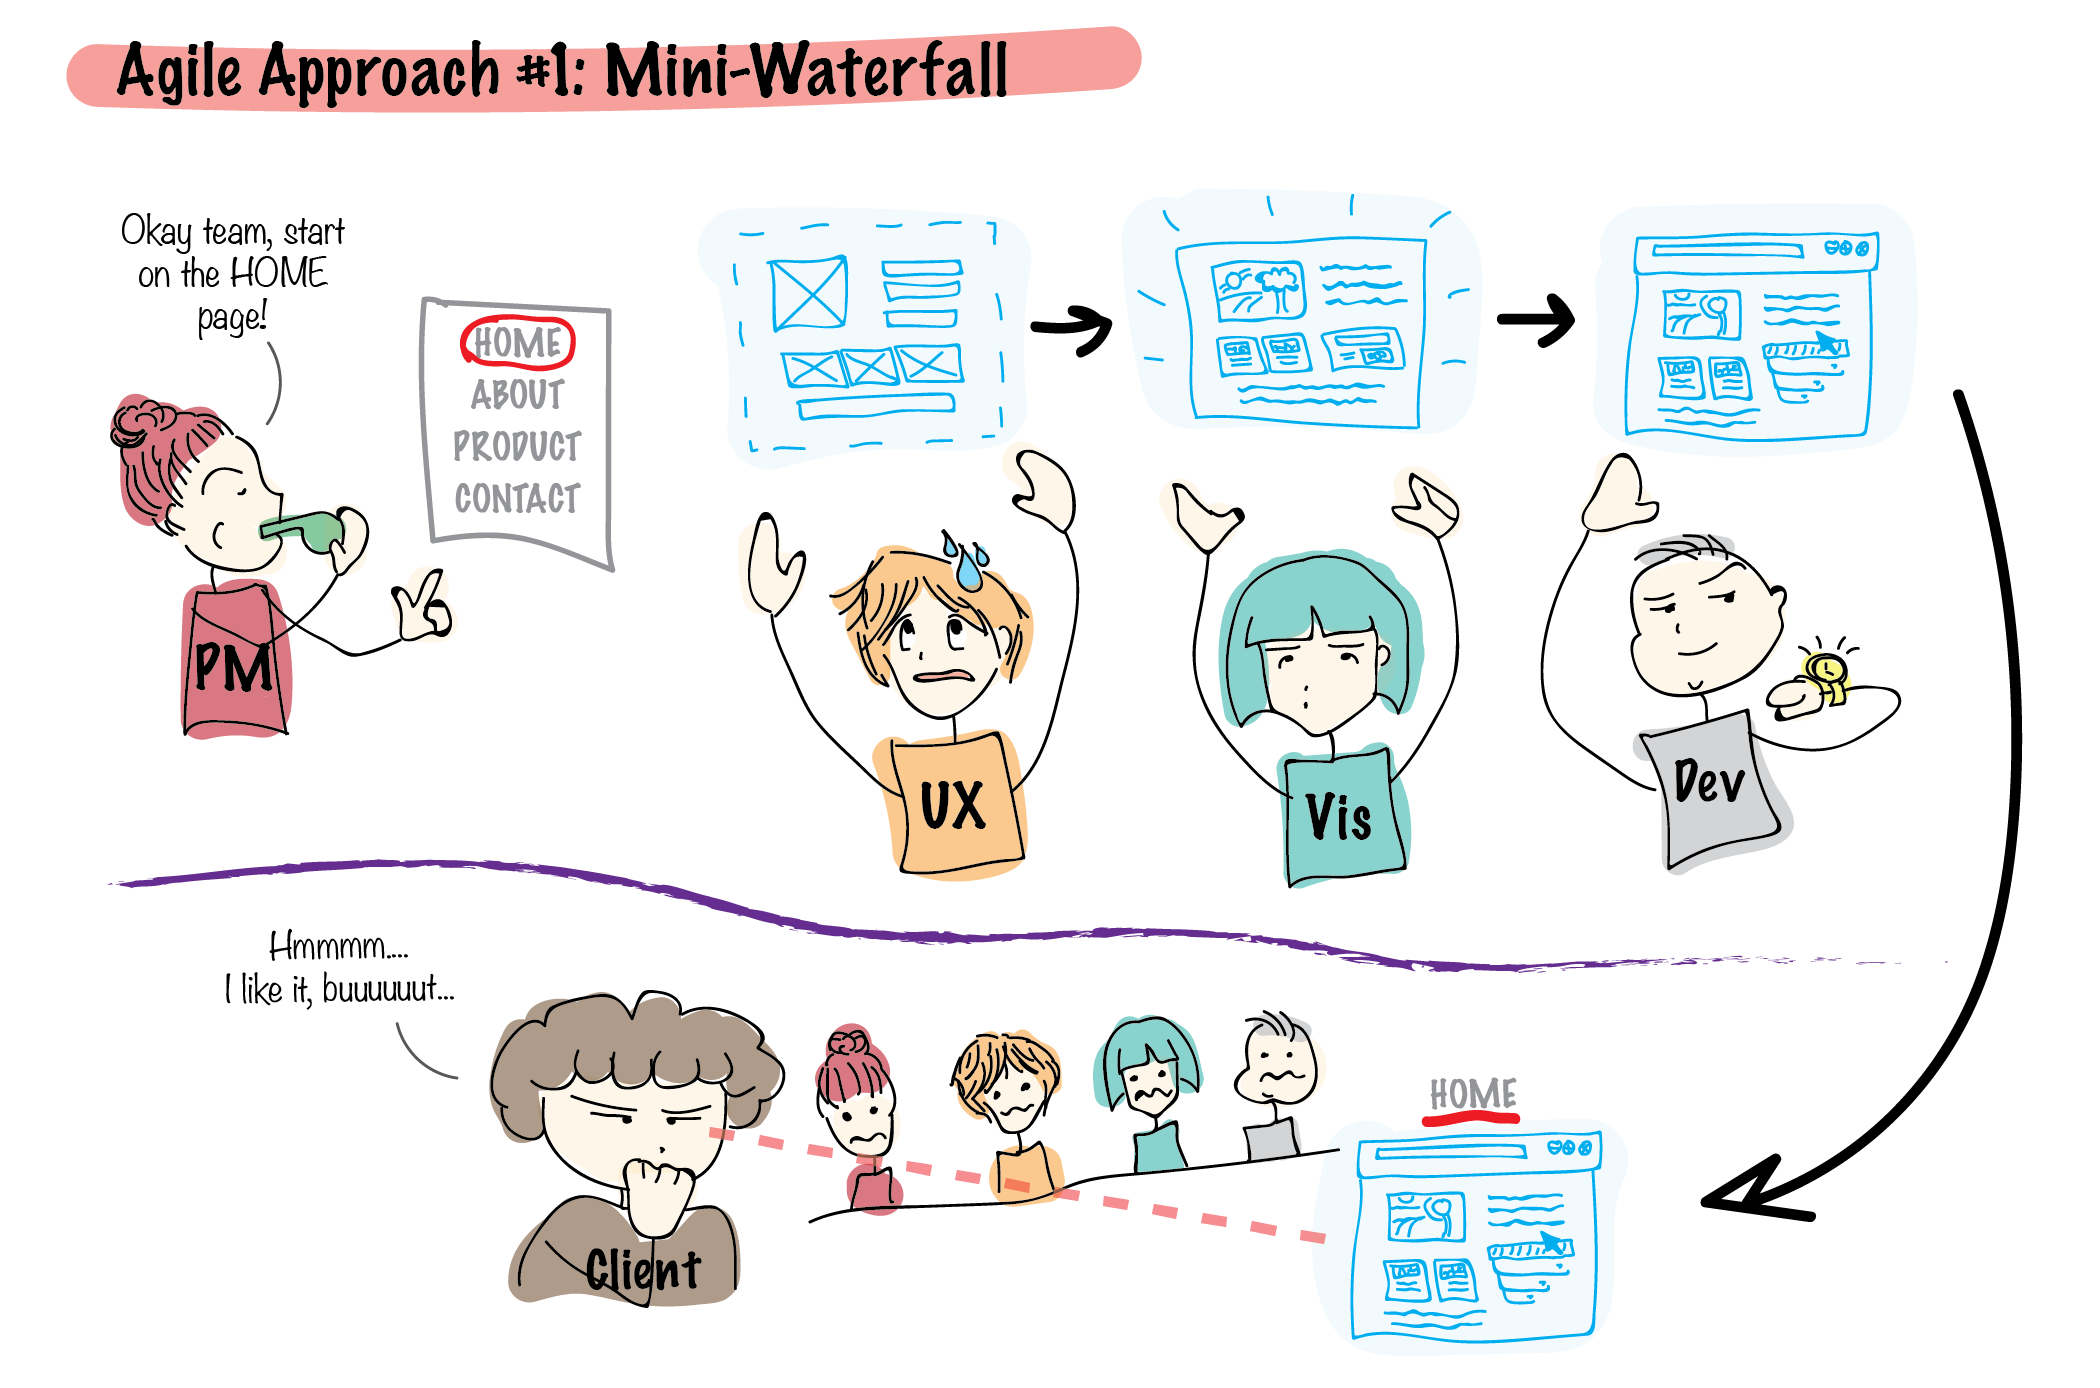 Agile ux it s a mindset not a process fraukeseewald for Waterfall and agile design processes